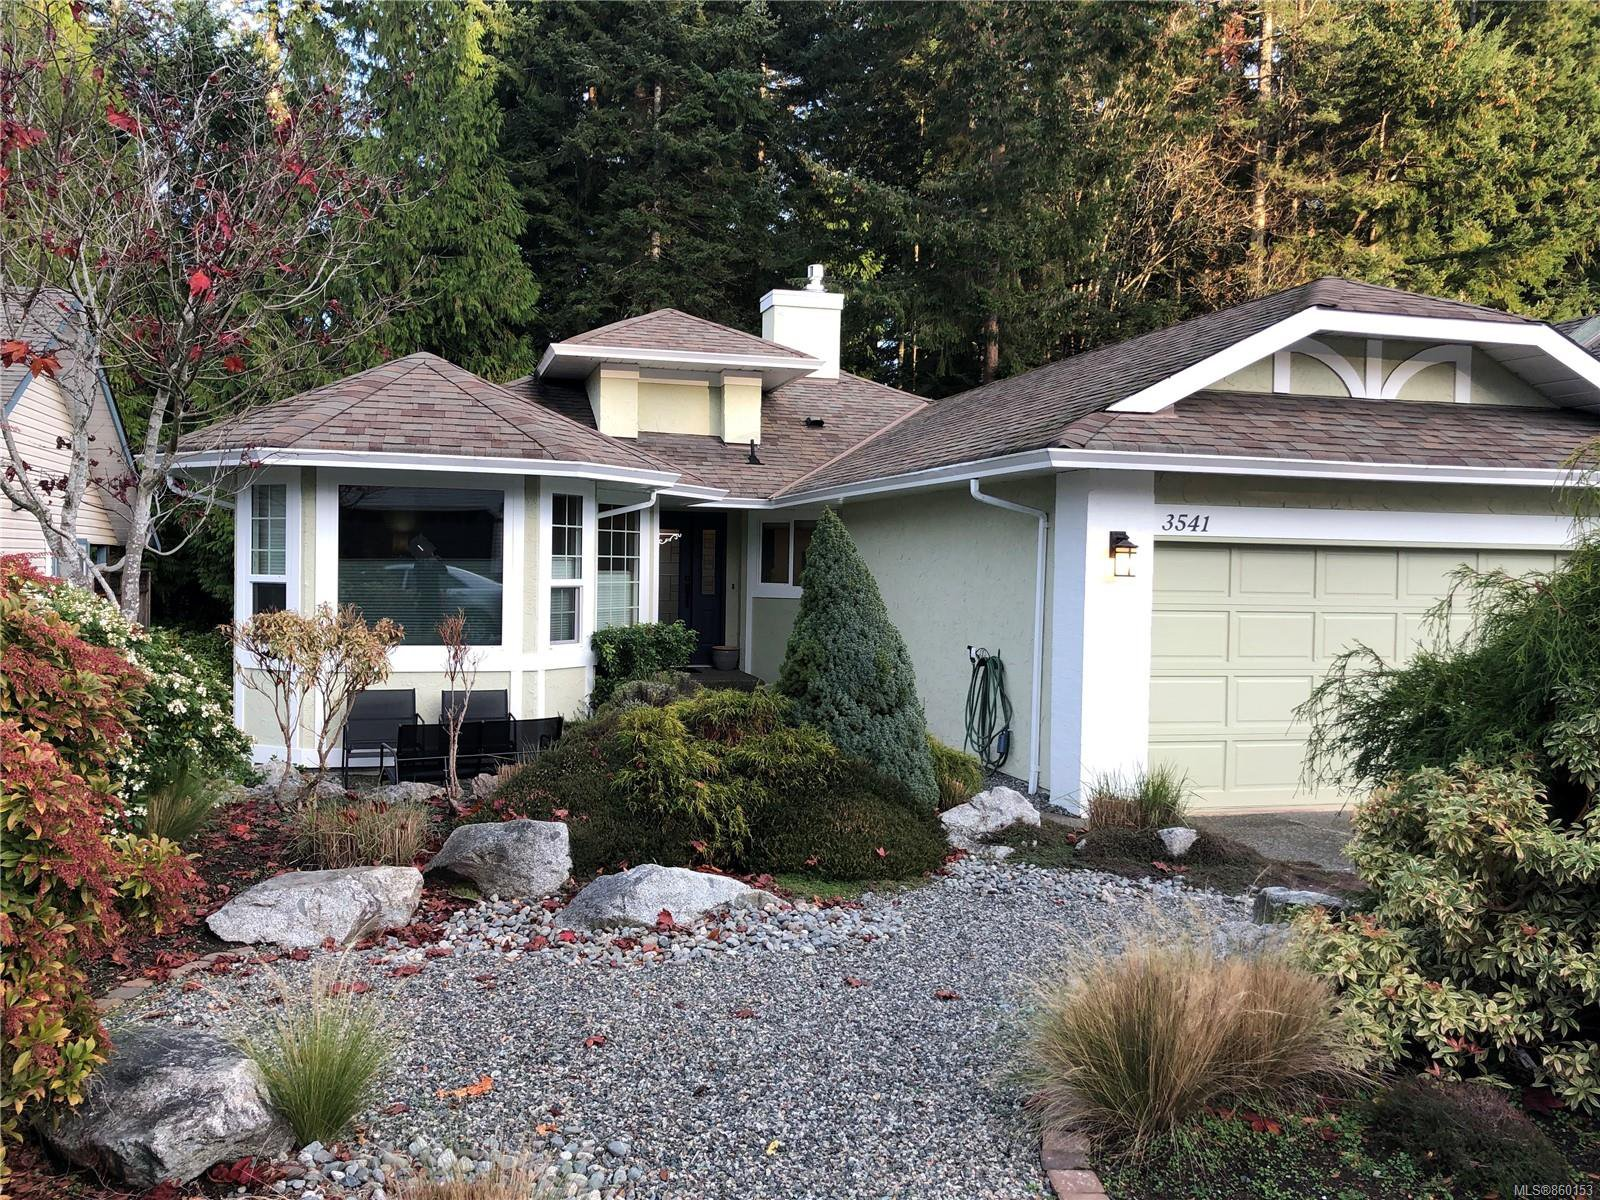 Main Photo: 3541 S Arbutus Dr in : ML Cobble Hill House for sale (Malahat & Area)  : MLS®# 860153